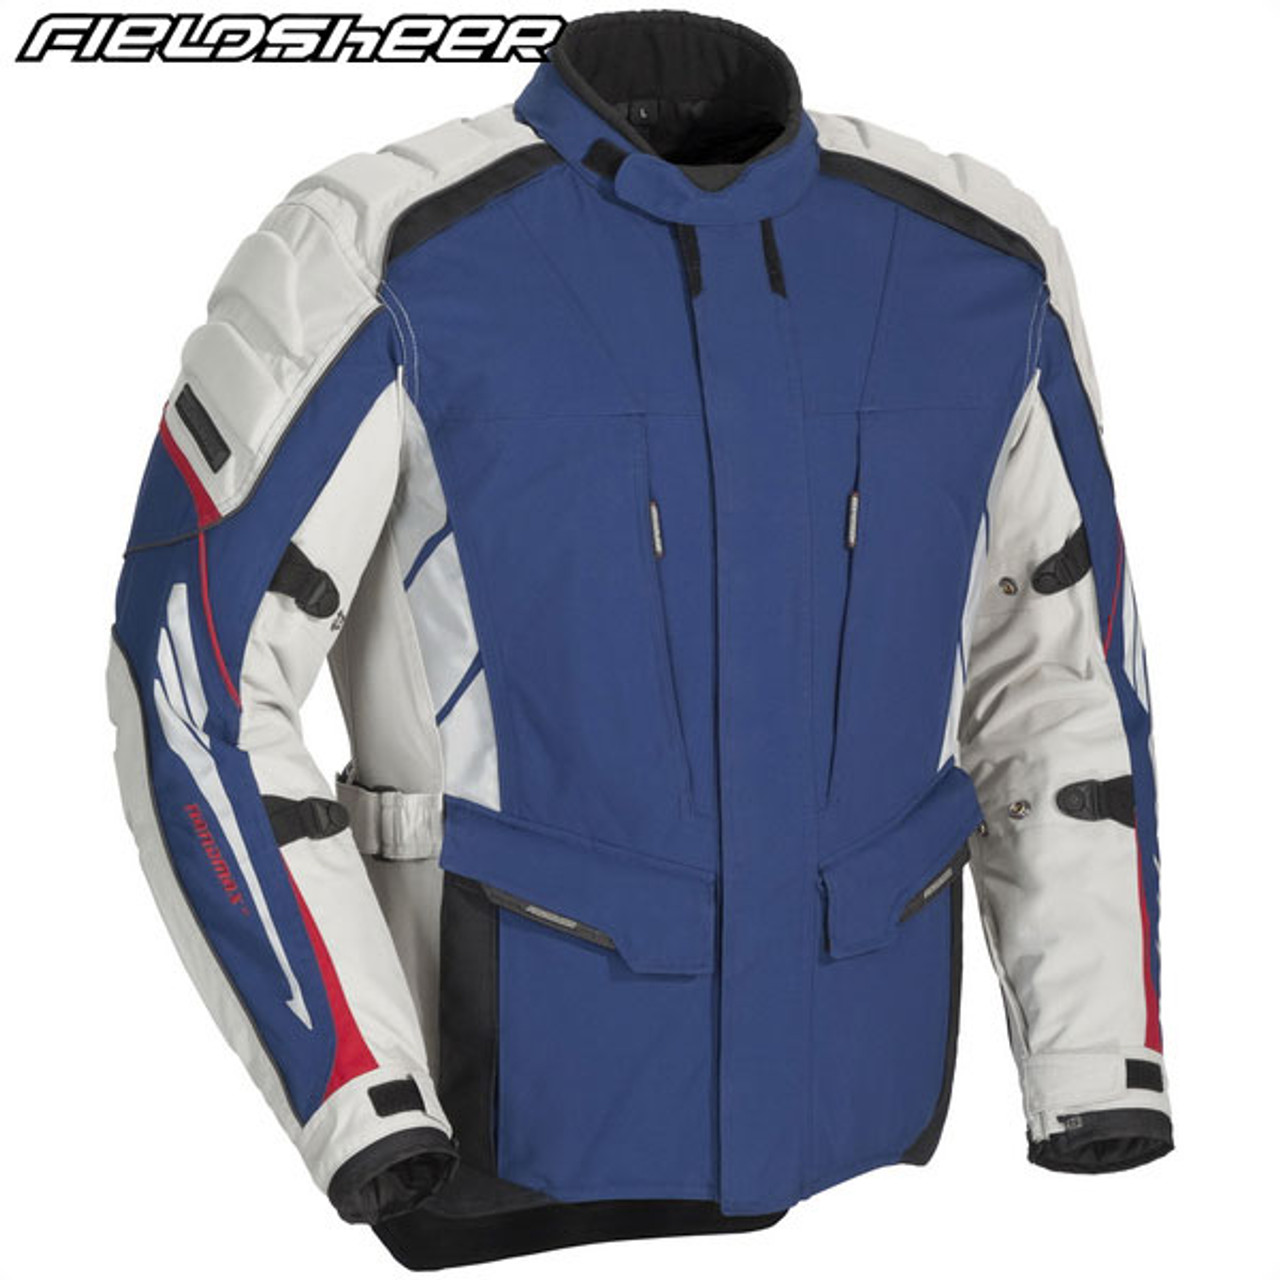 Images of Fieldsheer Jacket - Best Fashion Trends and Models